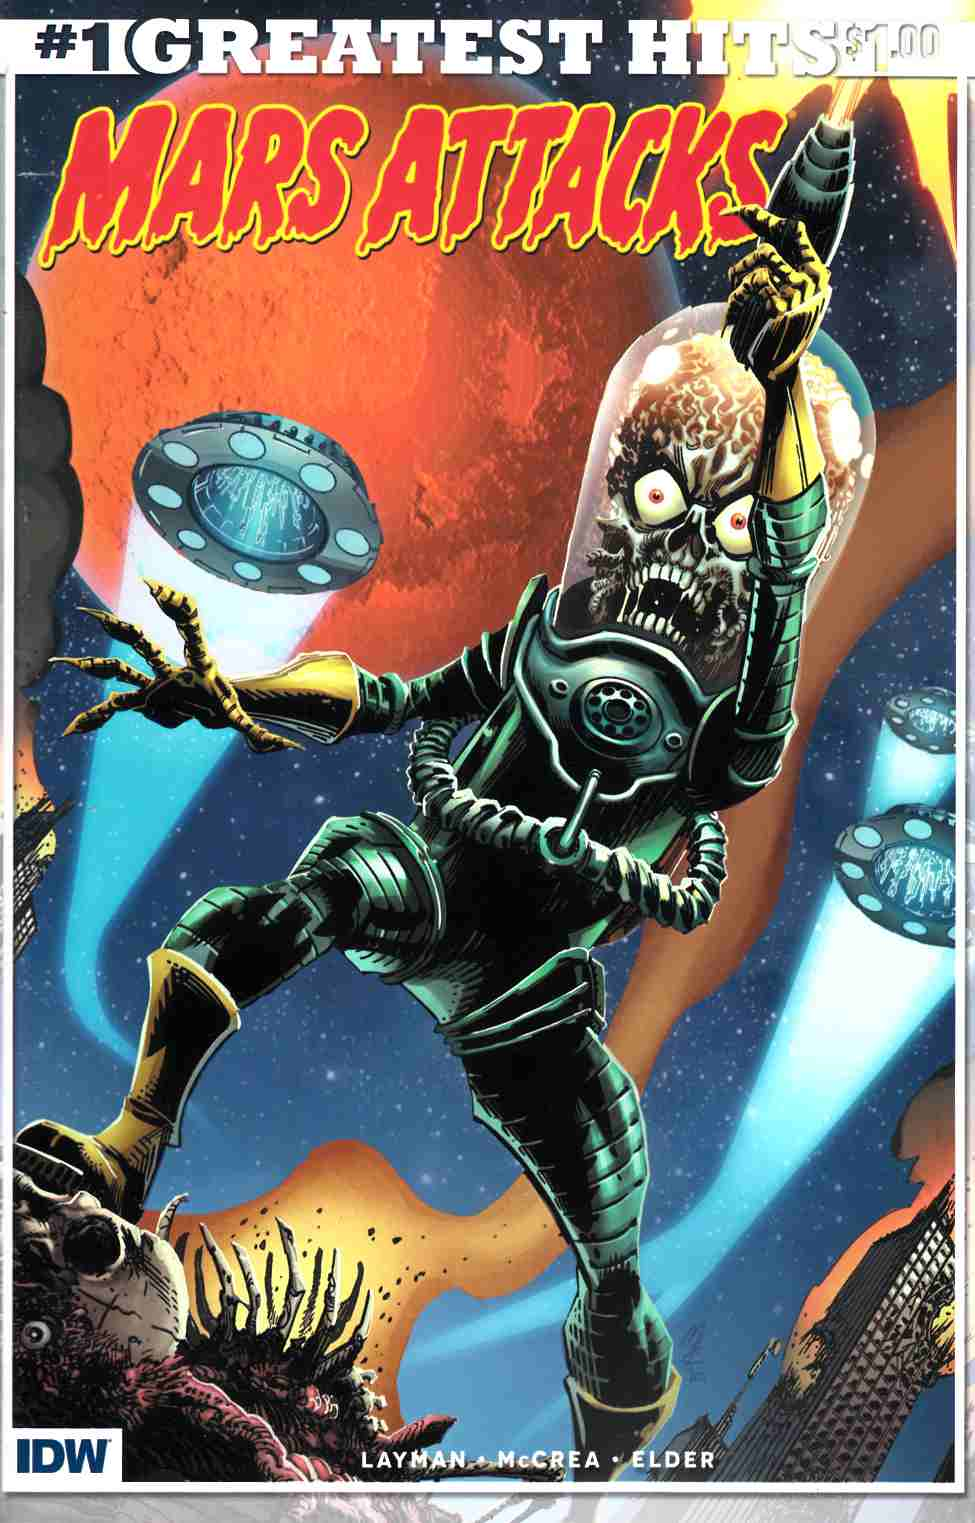 Mars Attacks #1 IDW Greatest Hits Edition [IDW Comic] THUMBNAIL